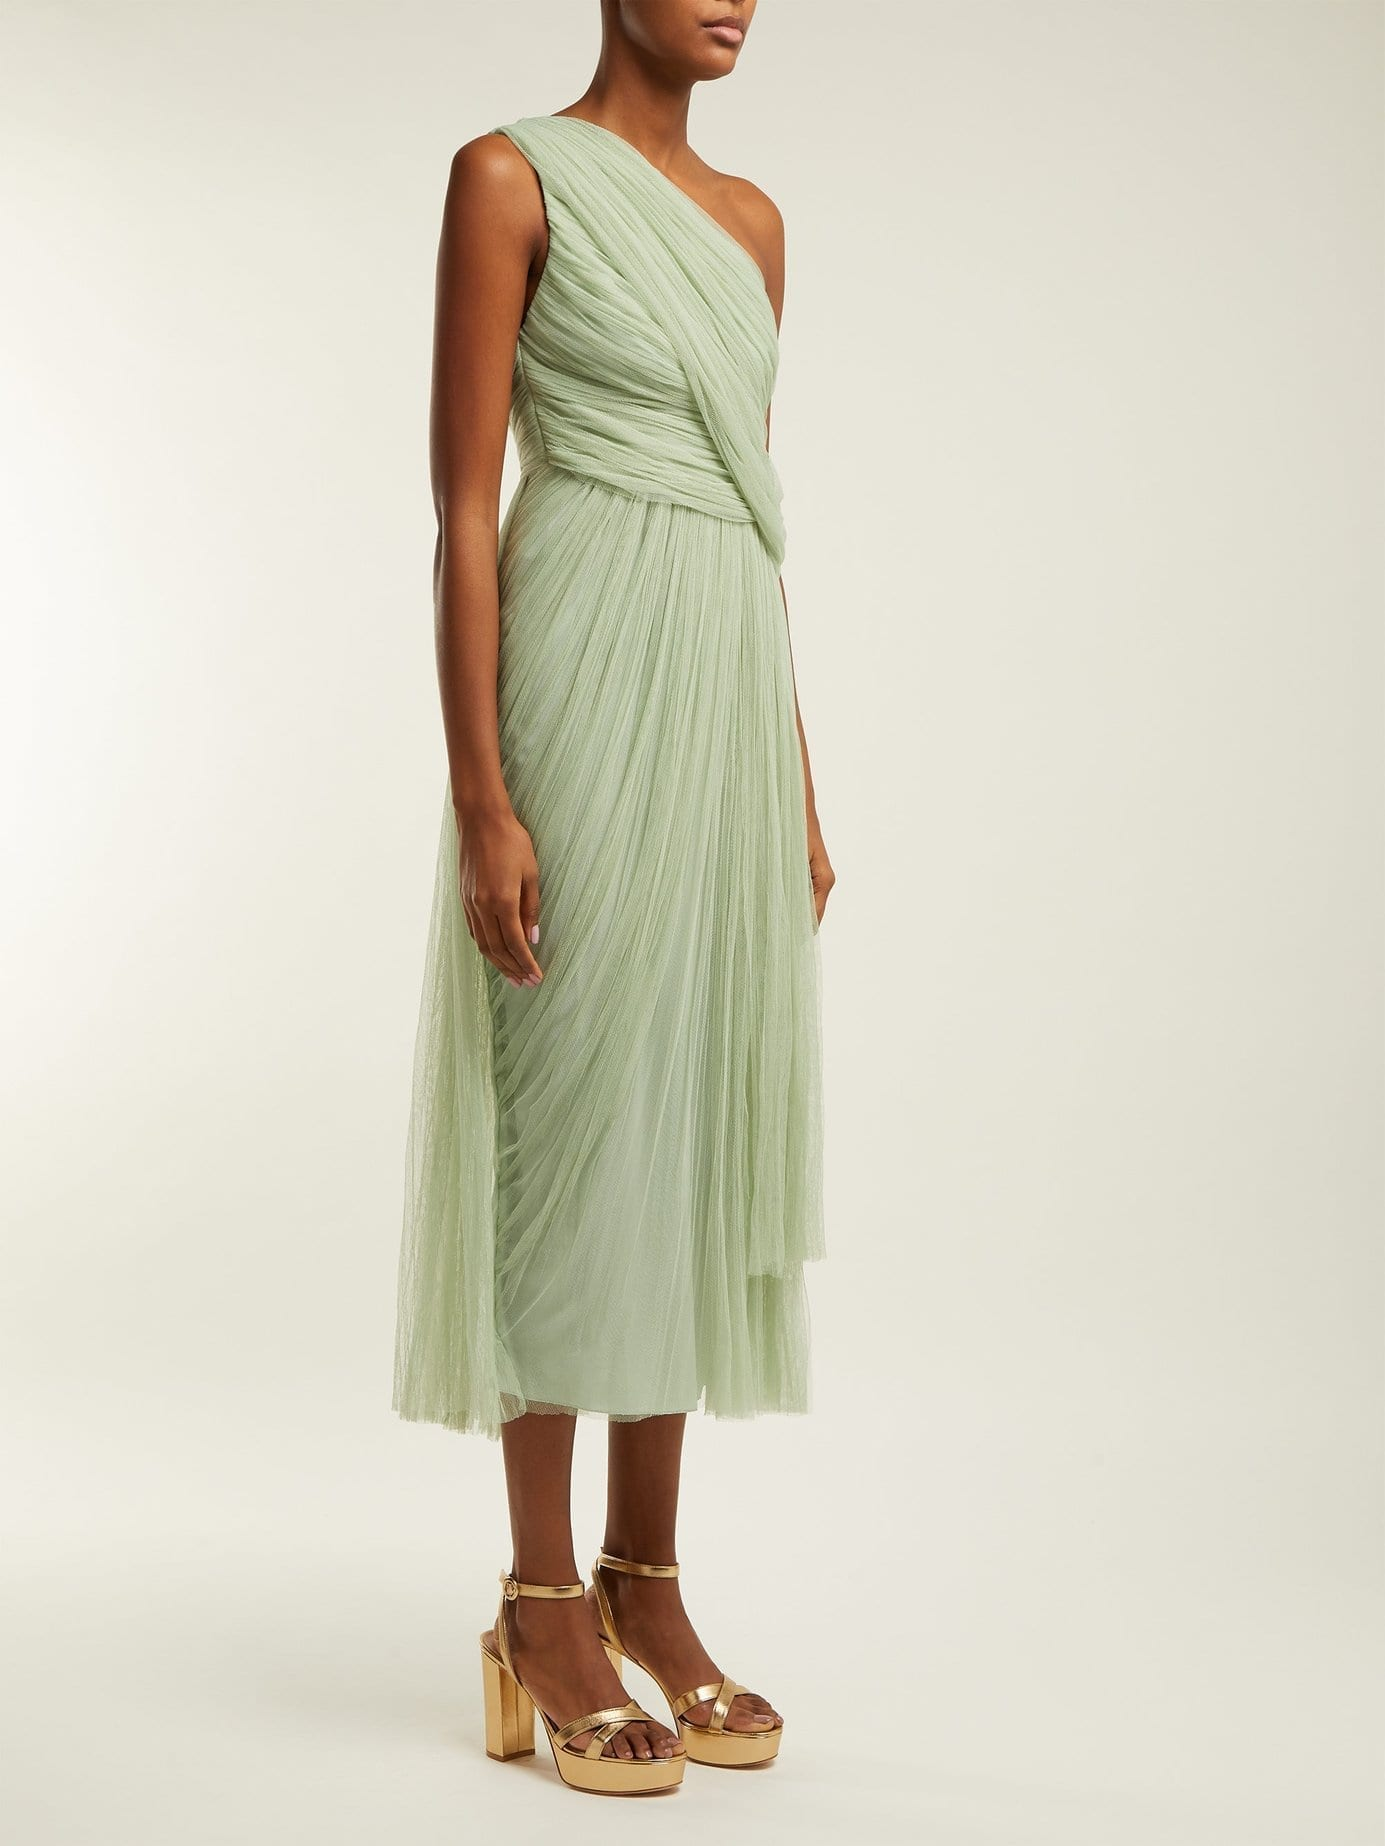 Maria Lucia Hohan Willa One Shoulder Pleated Tulle Olive Green Dress